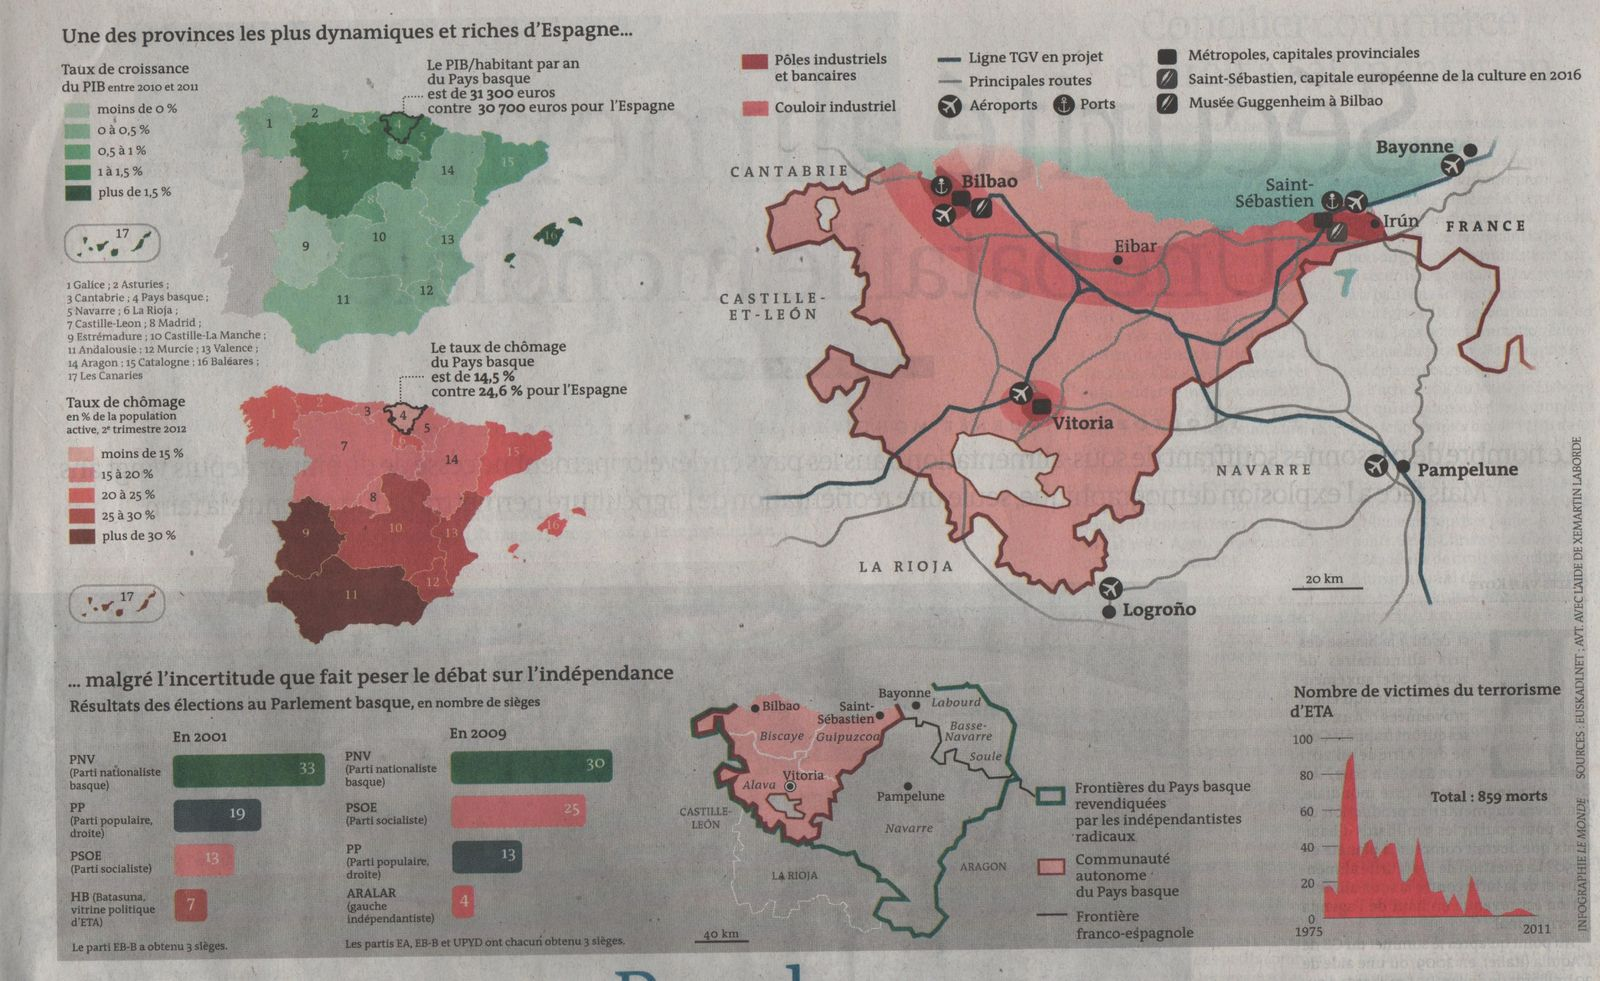 pays basque - le monde oct 2012